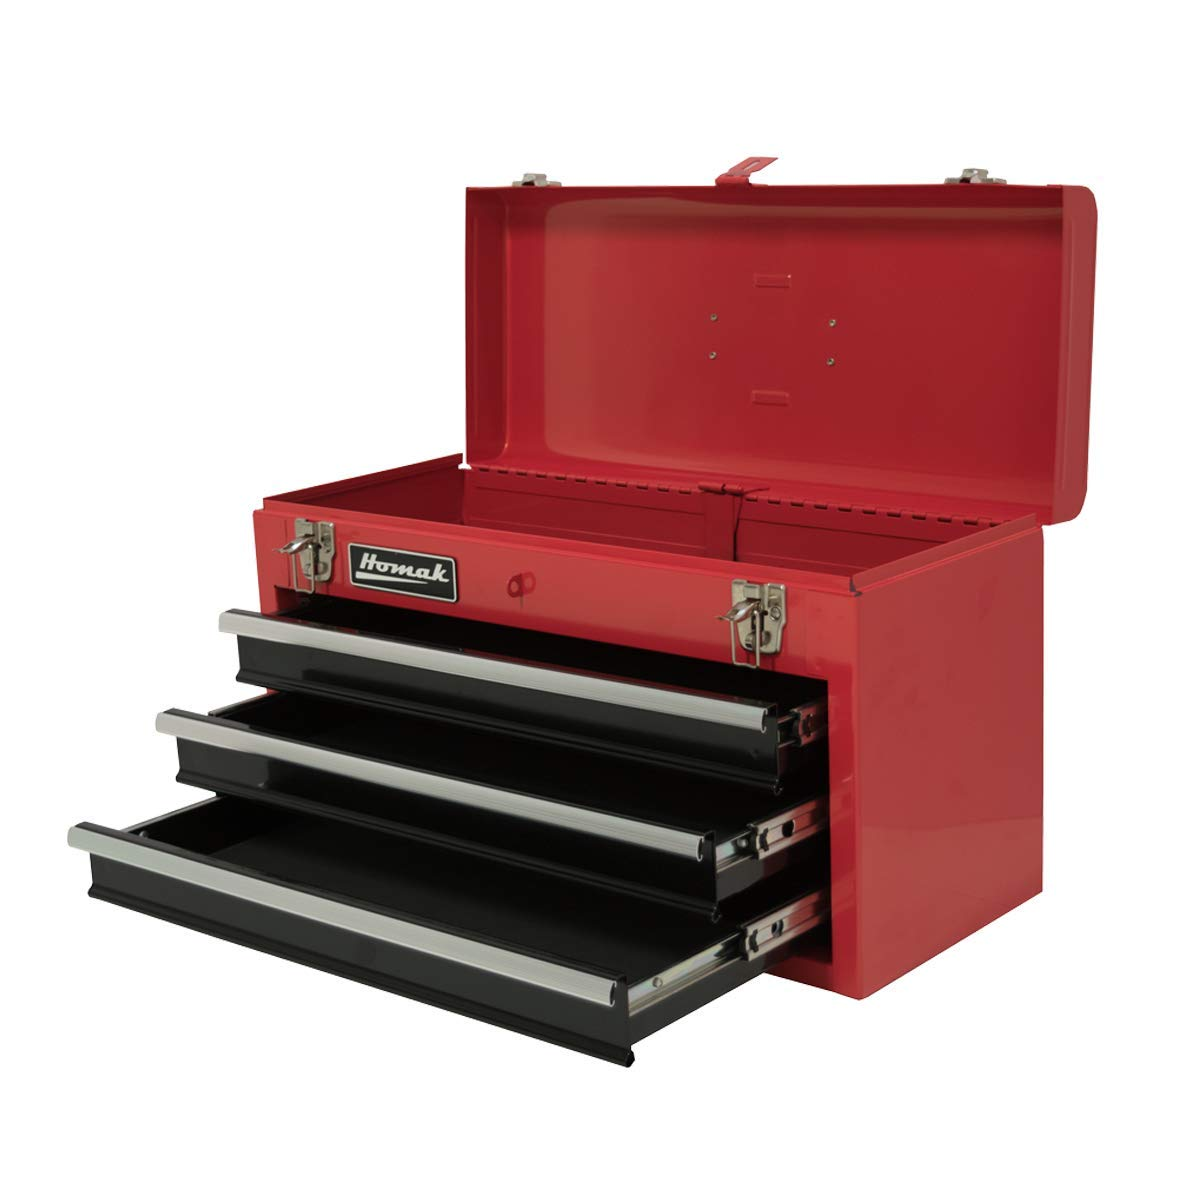 Homak 20-Inch 3-Drawer Ball-Bearing Toolbox/Chest, Red, RD01032101 by Homak Manufacturing (Image #1)